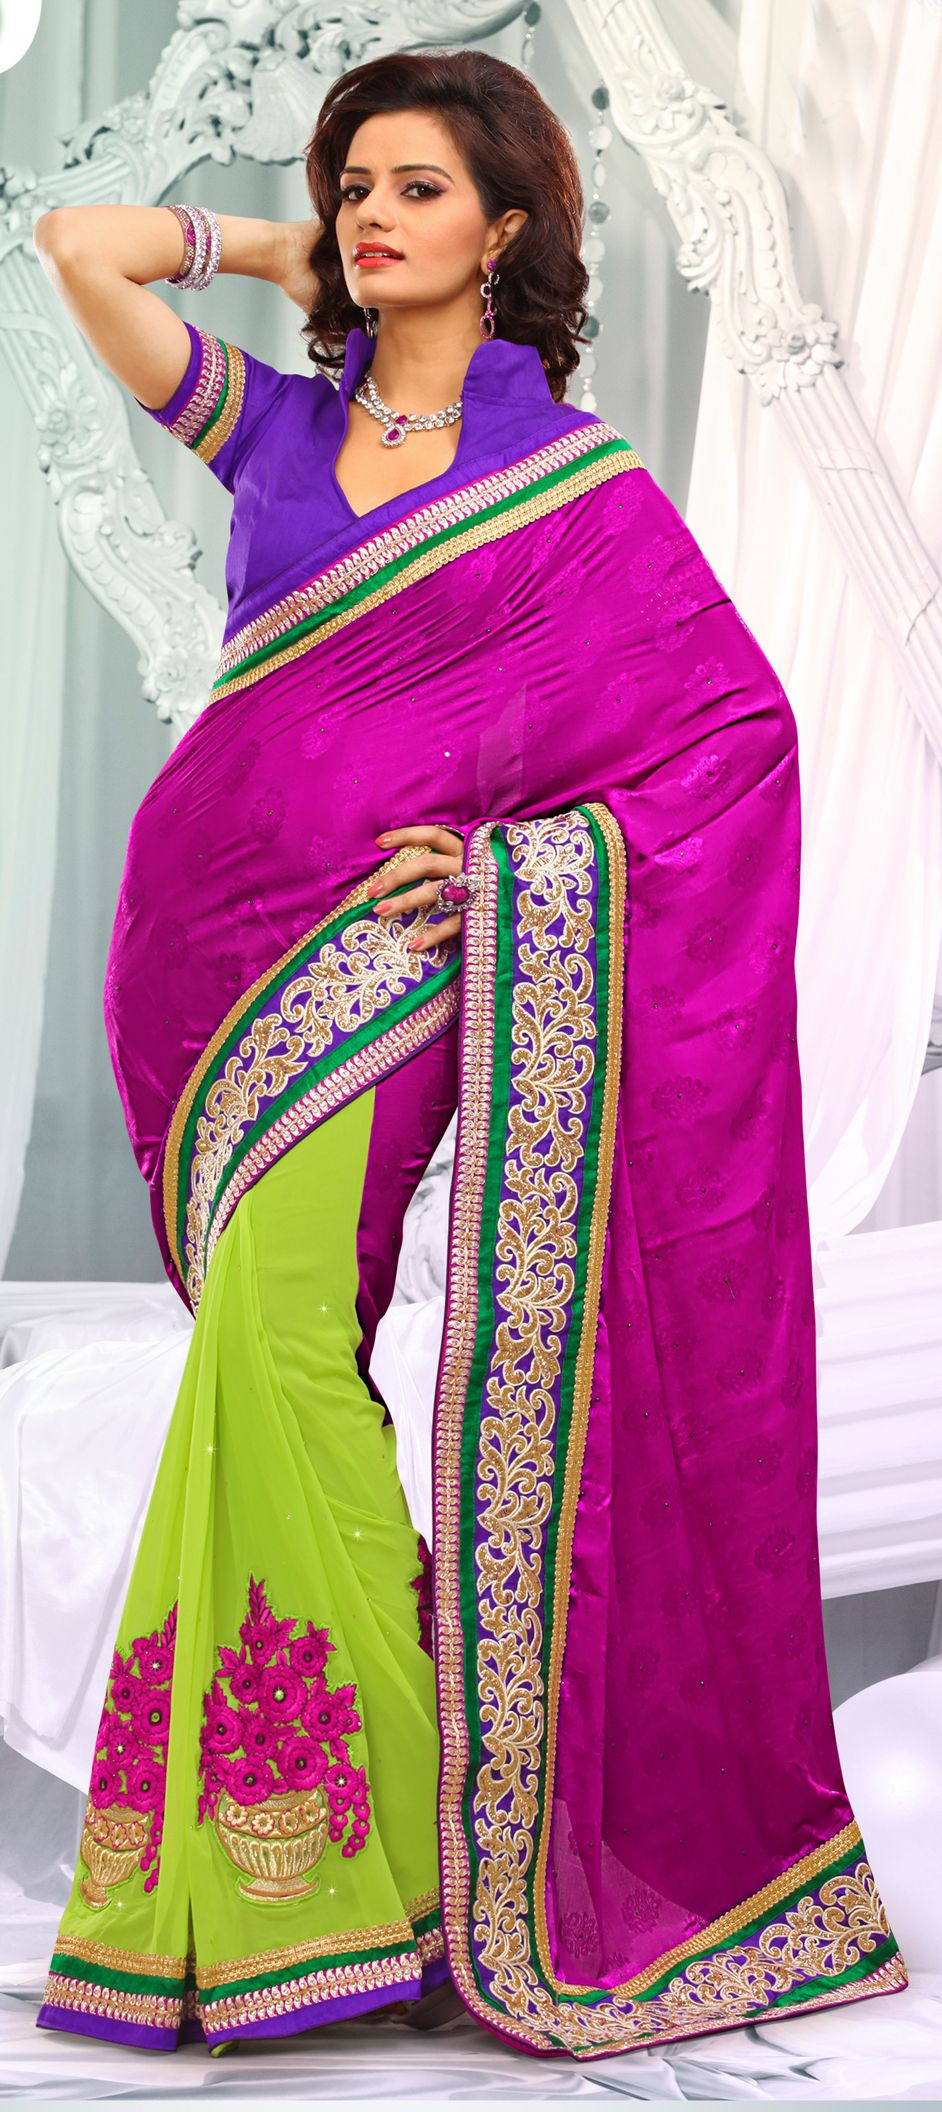 151852: #ColorBlock your pretty #saree with neon colors ...